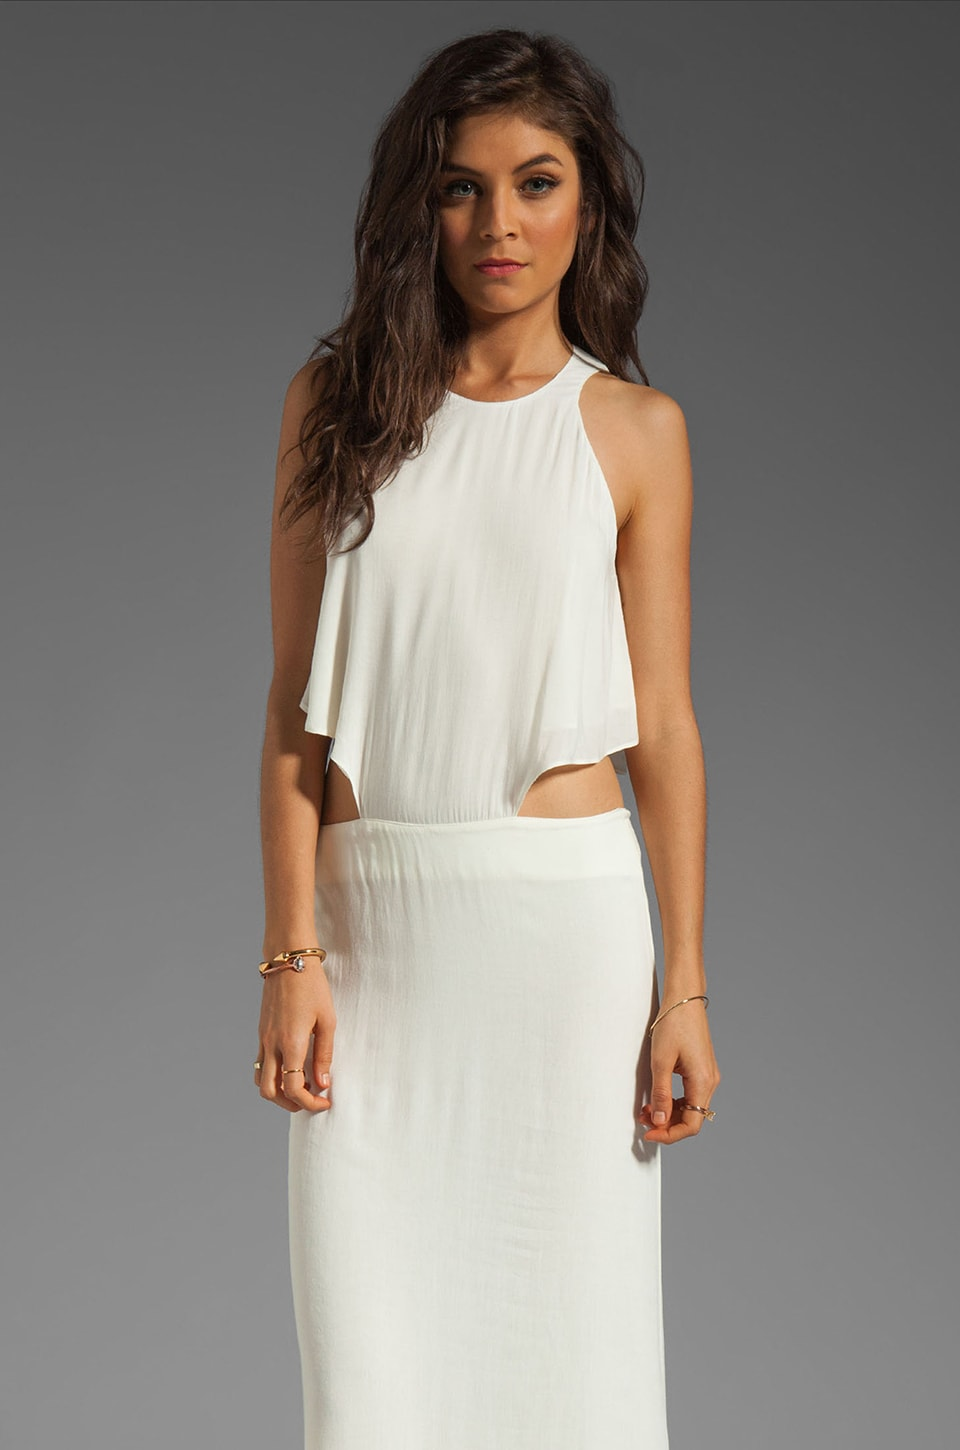 Boulee Cynthia Long Dress in Off White